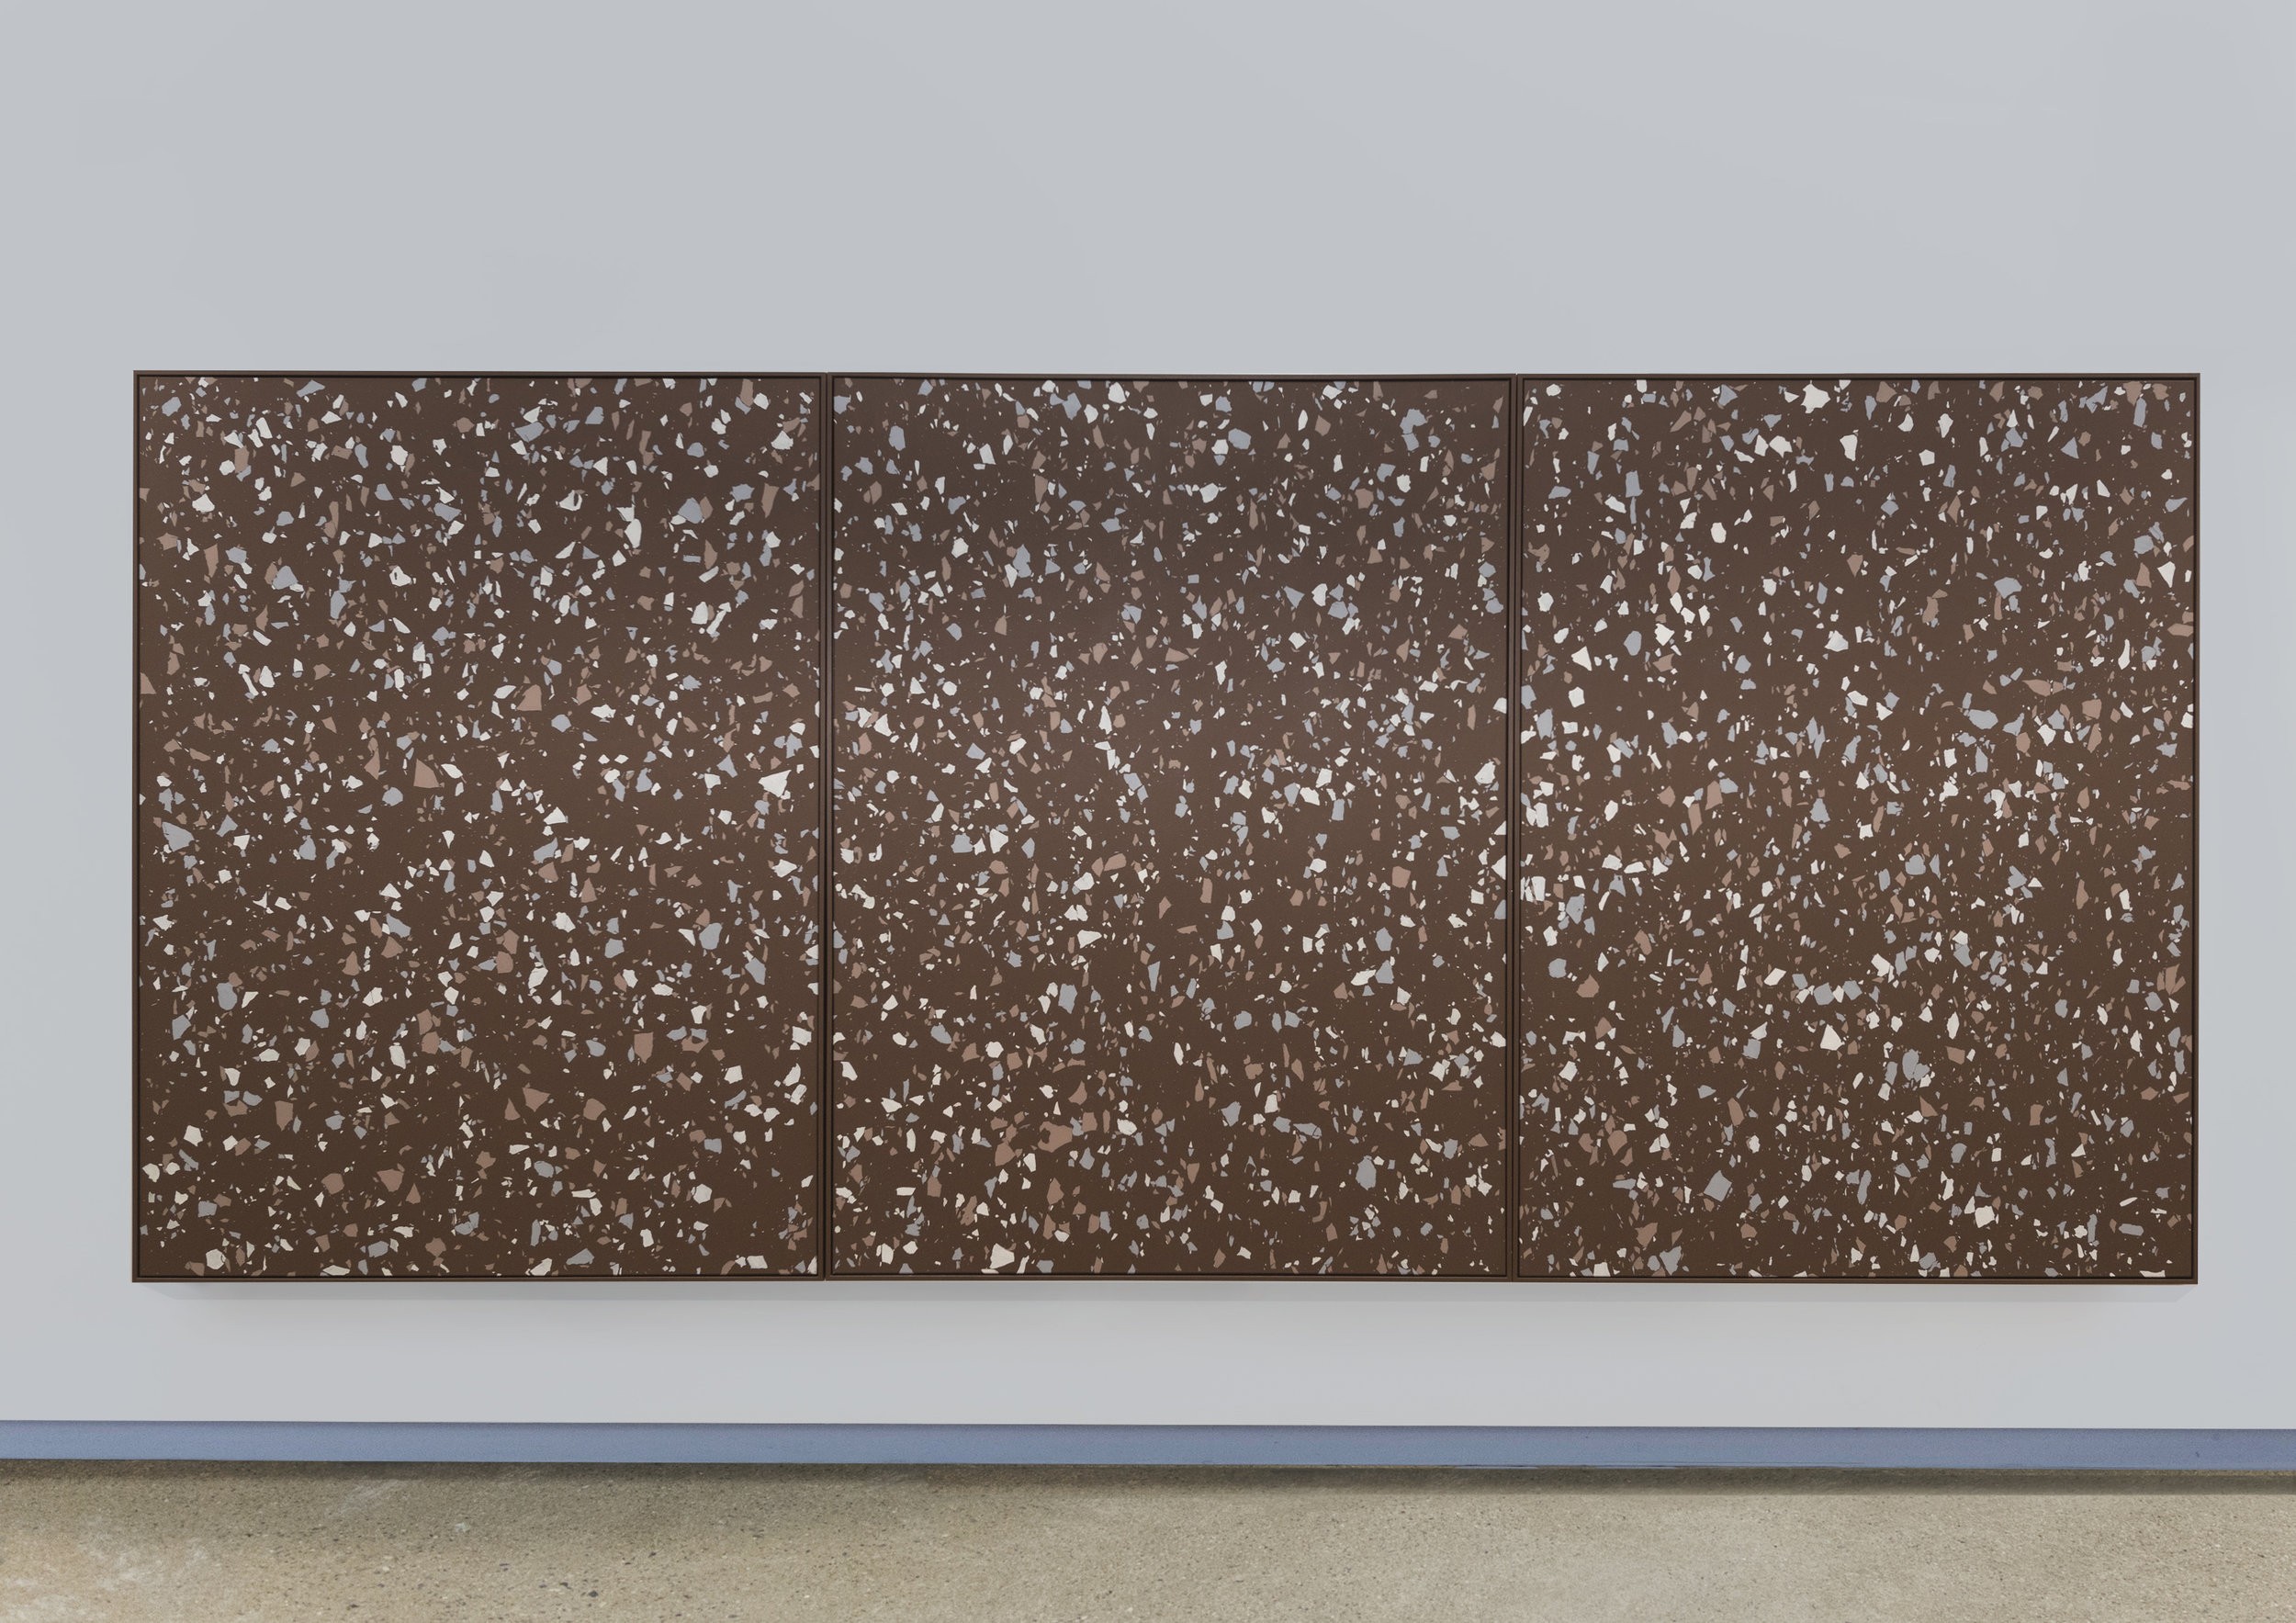 Lobby Part II , 2015 Terrazzo rubber, acrylic on canvas 200 x 450 cm